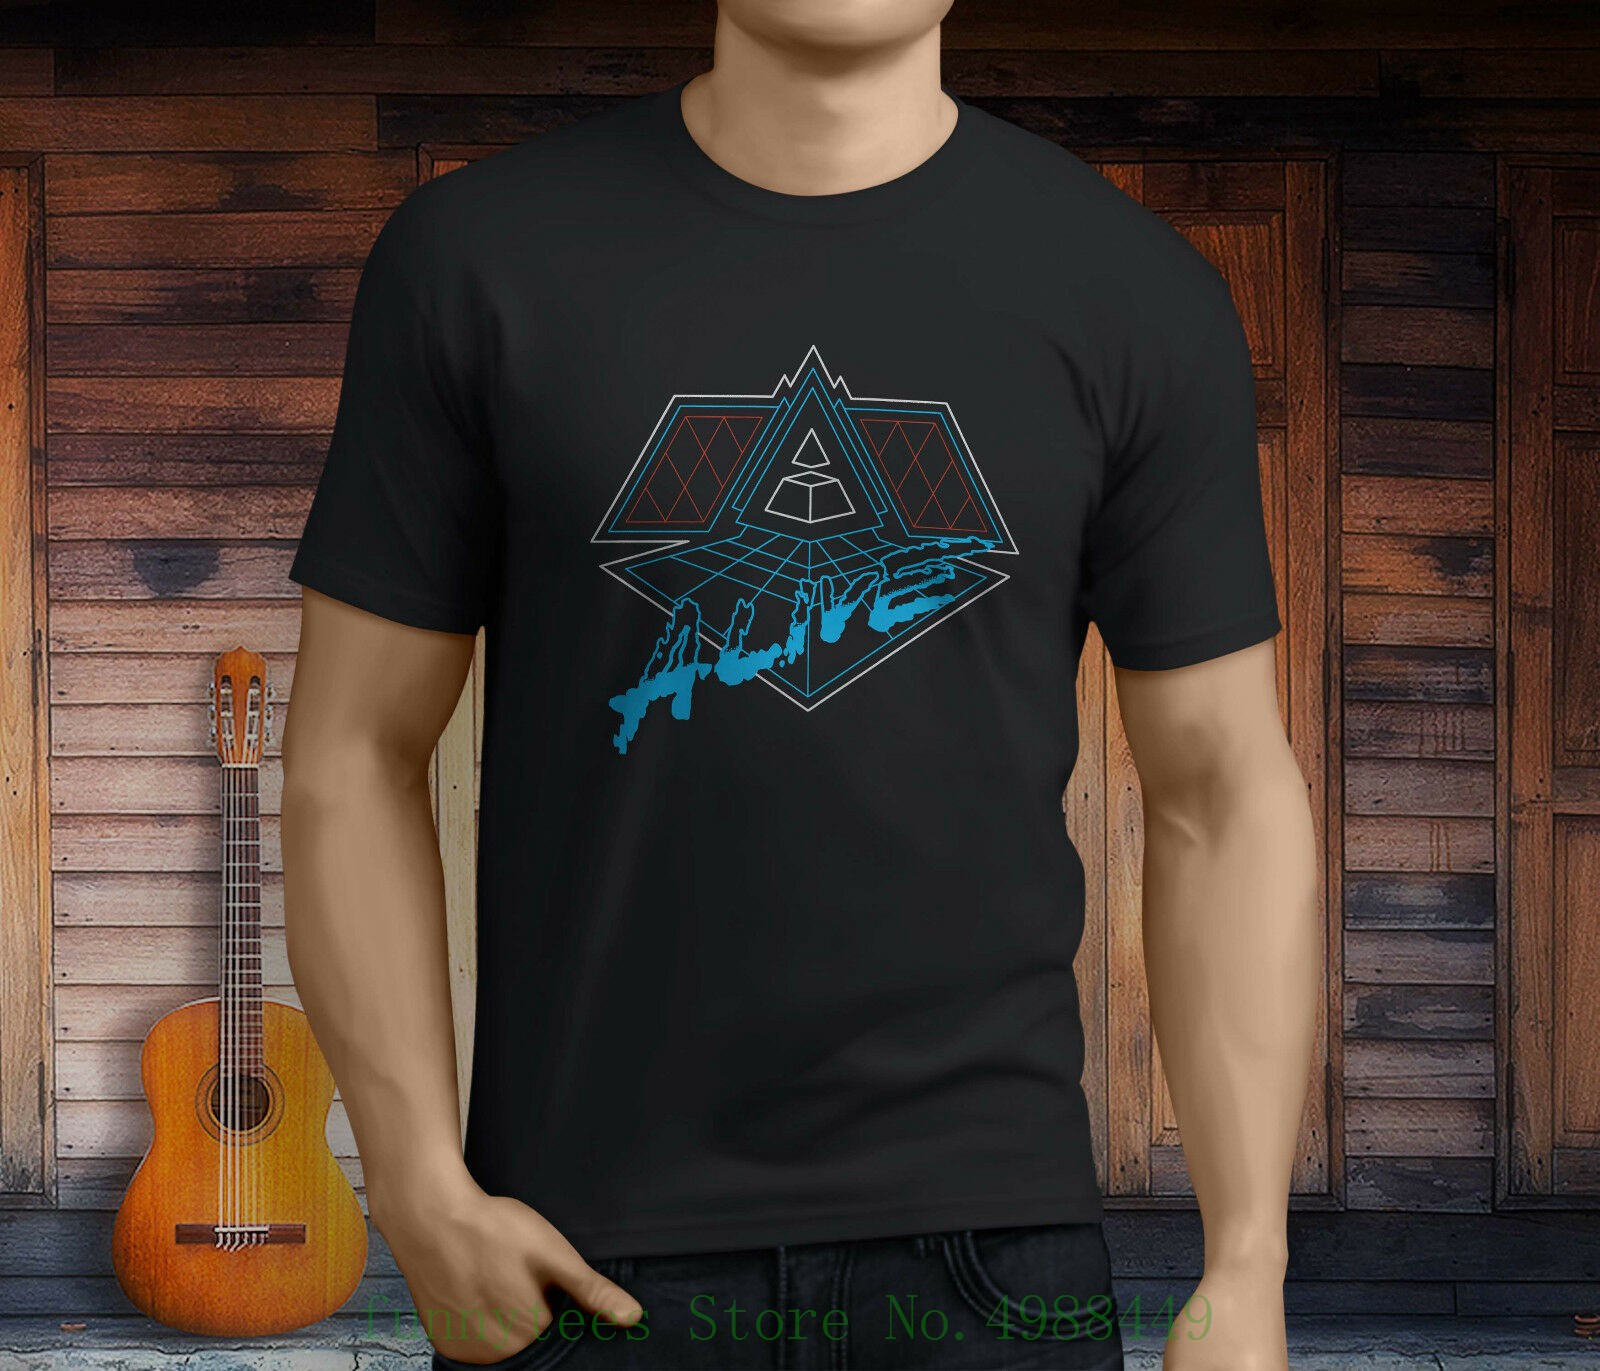 New <font><b>Daft</b></font> <font><b>Punk</b></font> Alive Electro Music Men's Black <font><b>T</b></font> <font><b>Shirt</b></font> Size S - 3xl Tee <font><b>Shirts</b></font> Men O-neck Tees image